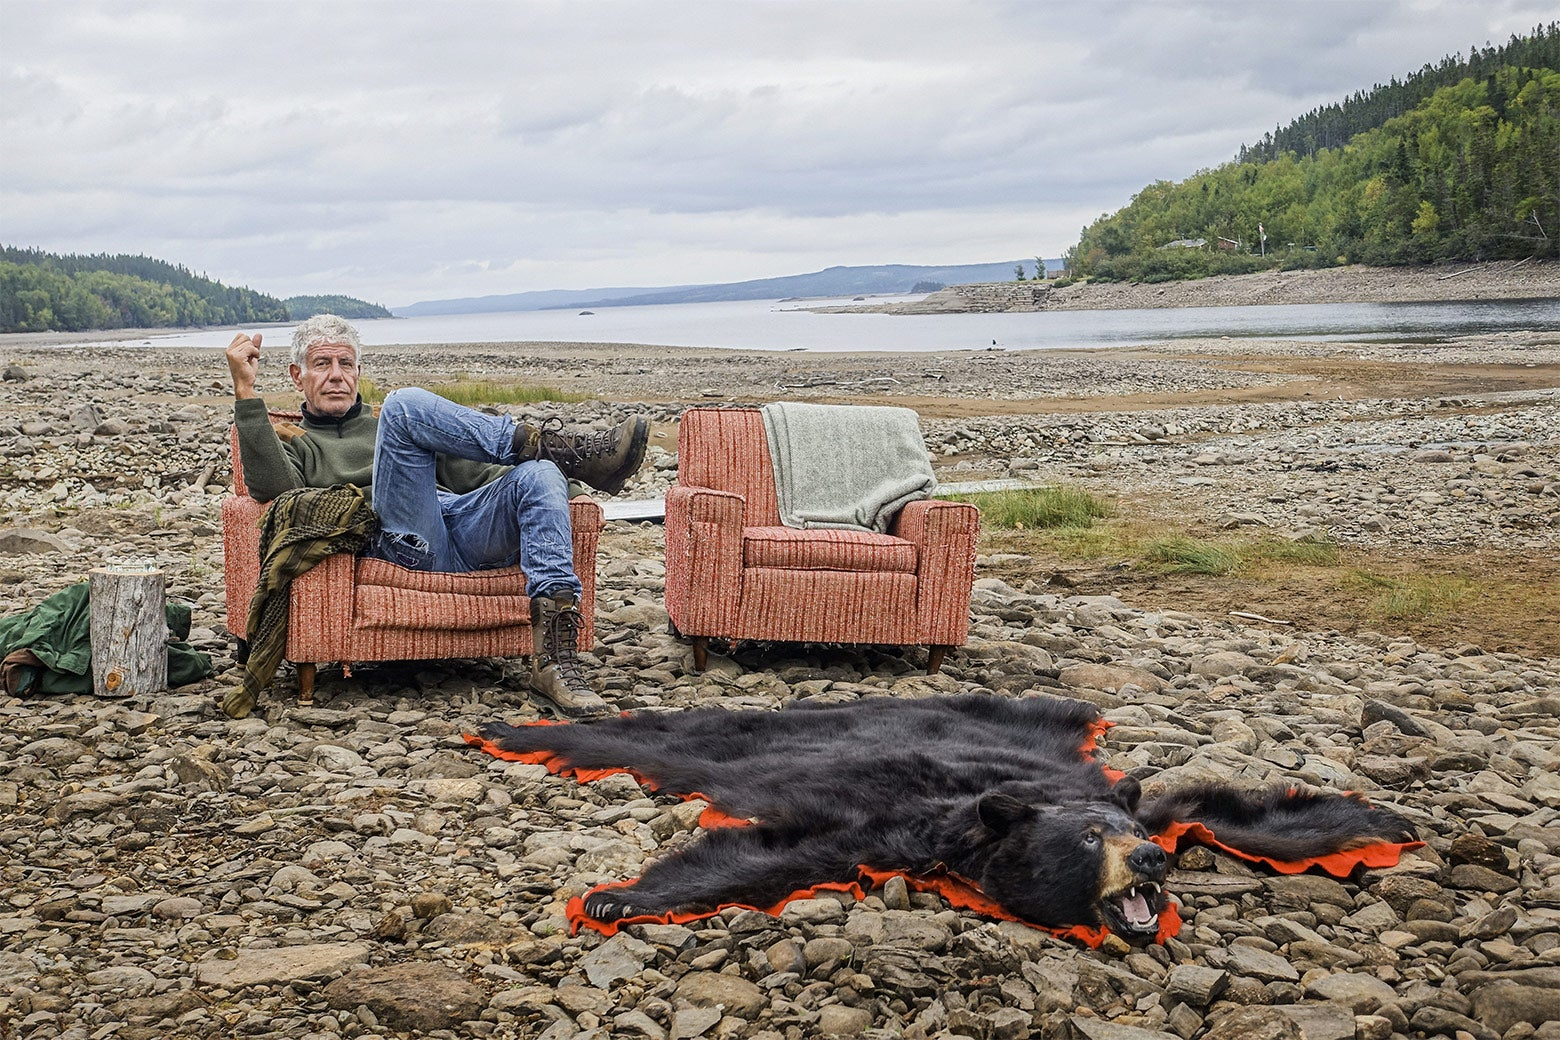 Anthony Bourdain Sits In An Upholstered Chair On A Rocky Beach Next To A  Bear Rug. Anthony Bourdain. CNN. Kitchen Confidential ...